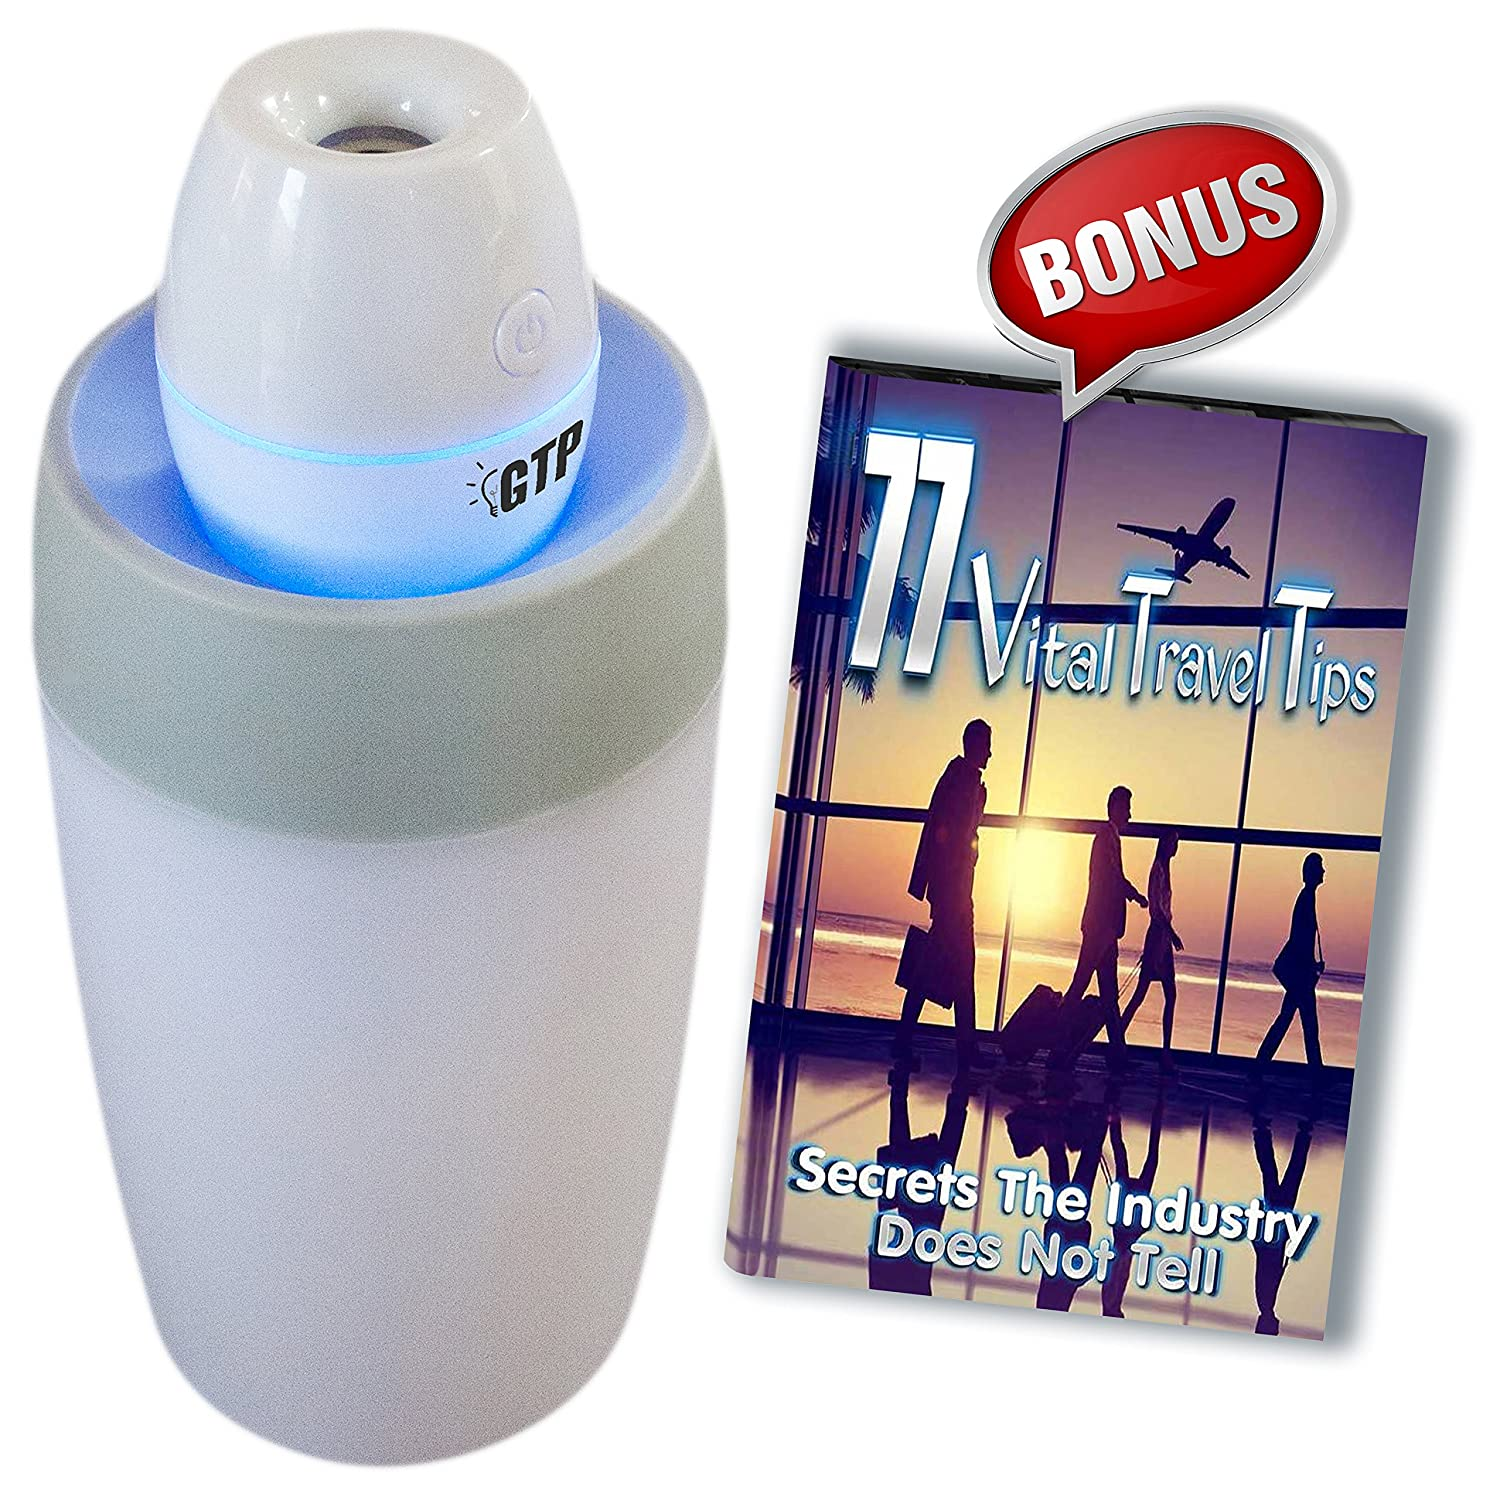 GTP USB Mini Personal Travel Cool Mist Portable Room Humidifier No Filter - BONUS 77 Secret Travel Tips eBook - Keeps Air Moist - Helps You Stay Healthy Year Round